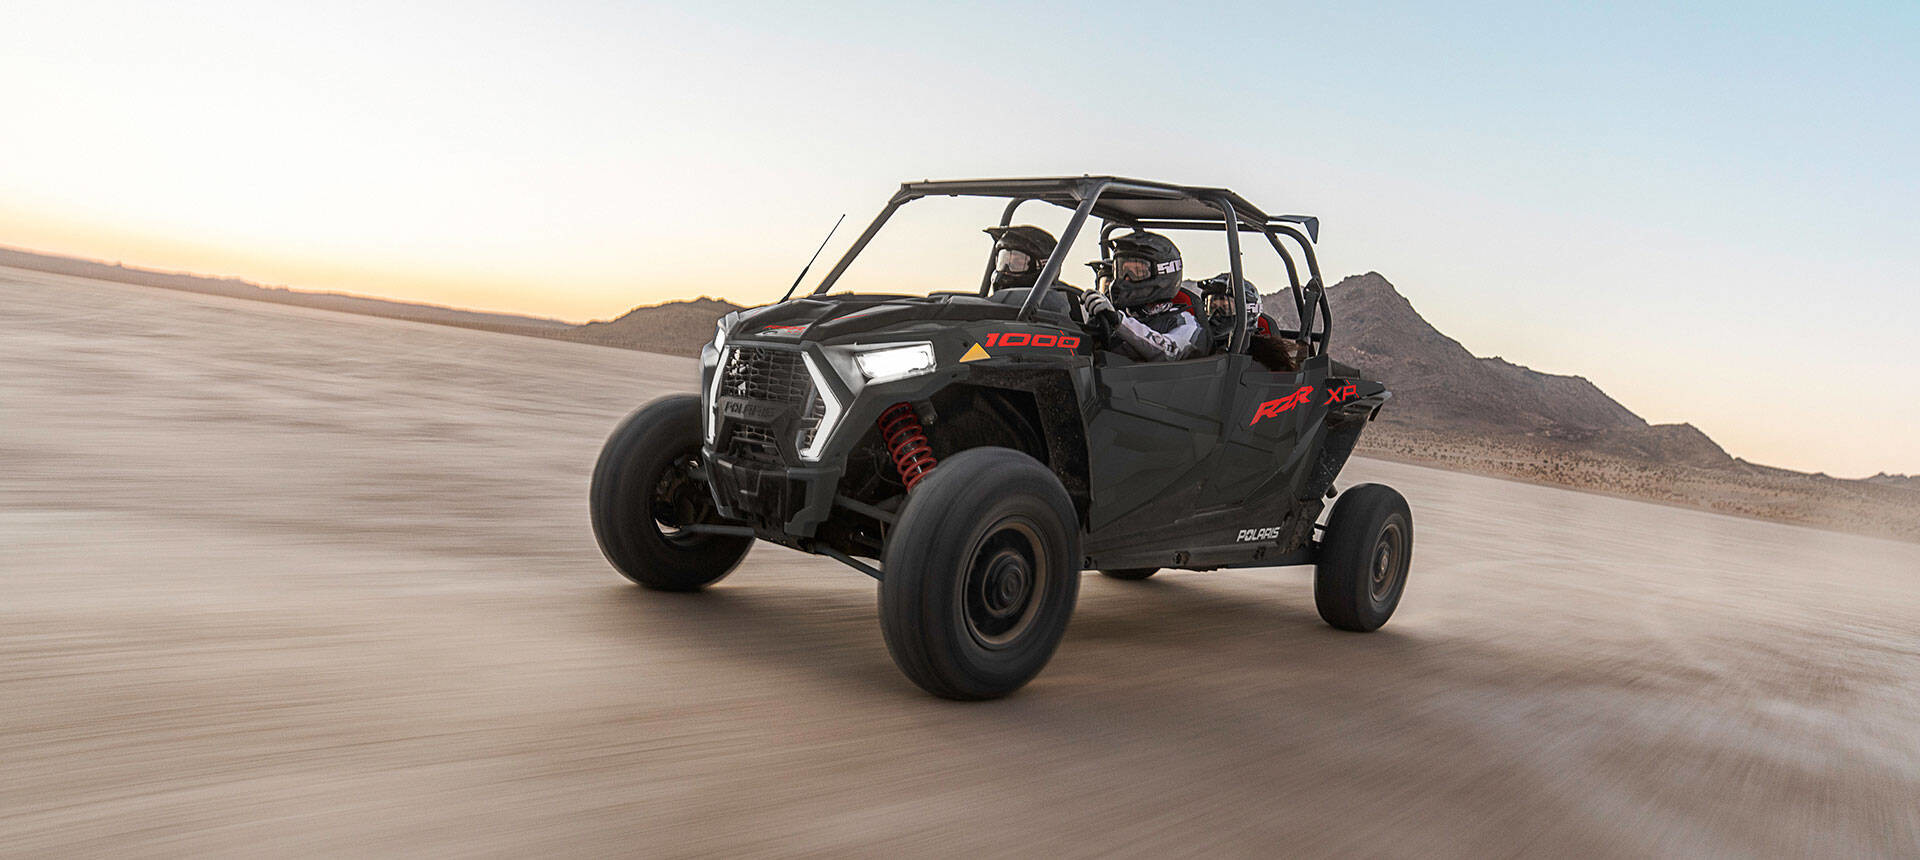 2020 RZR® XP 4 1000 Limited Edition Instagram image 7